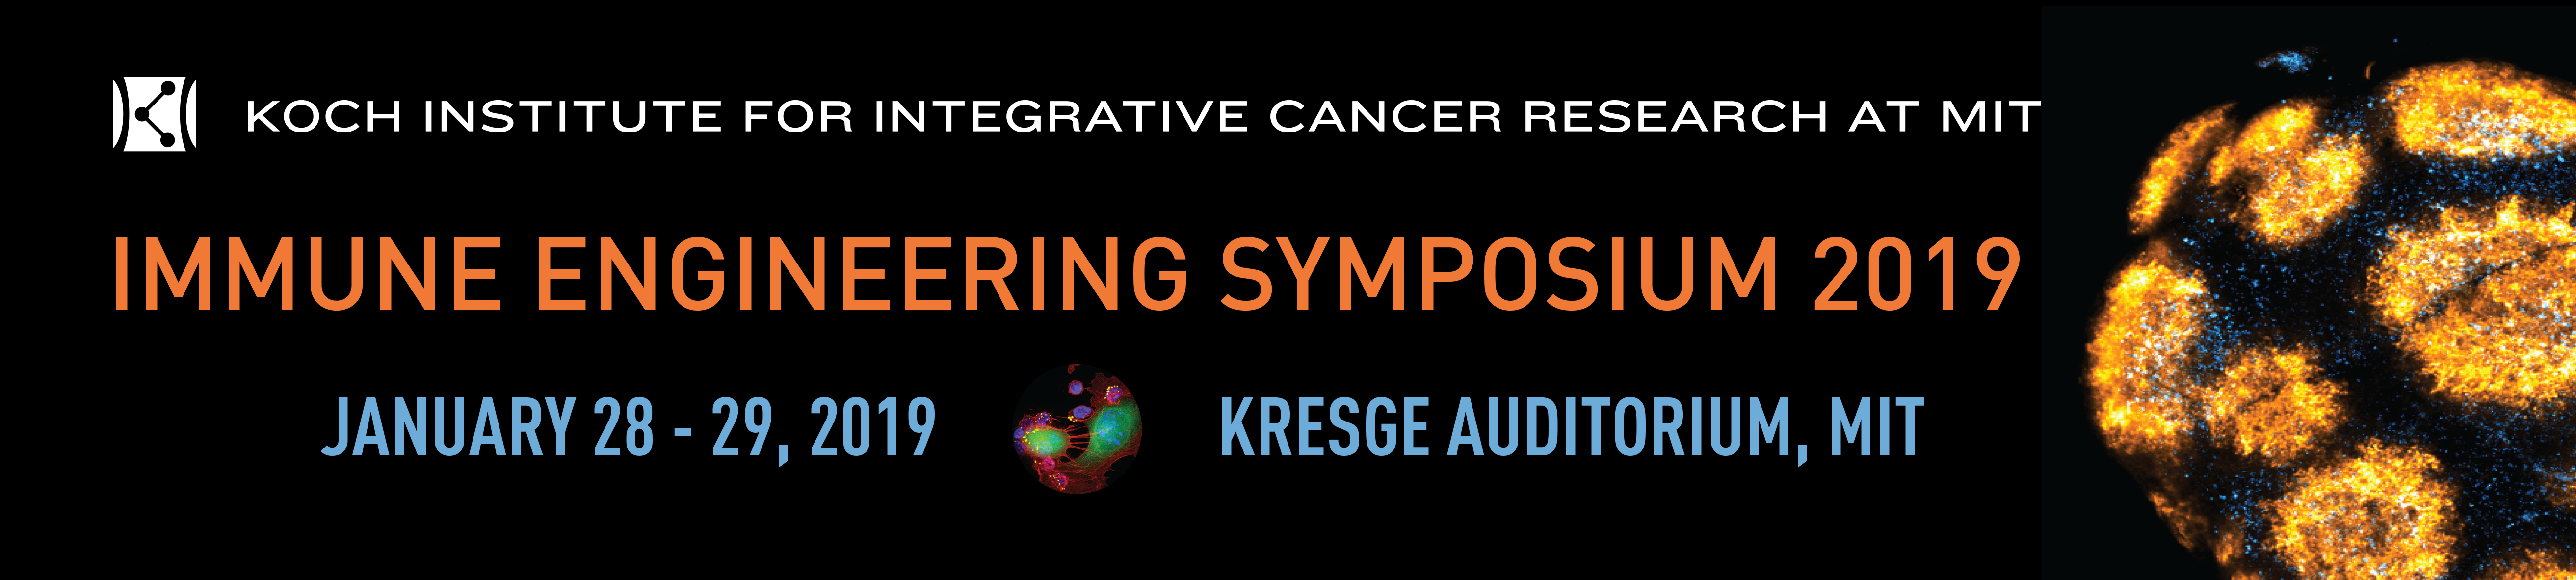 Koch Institute 2019  Immune Engineering Symposium